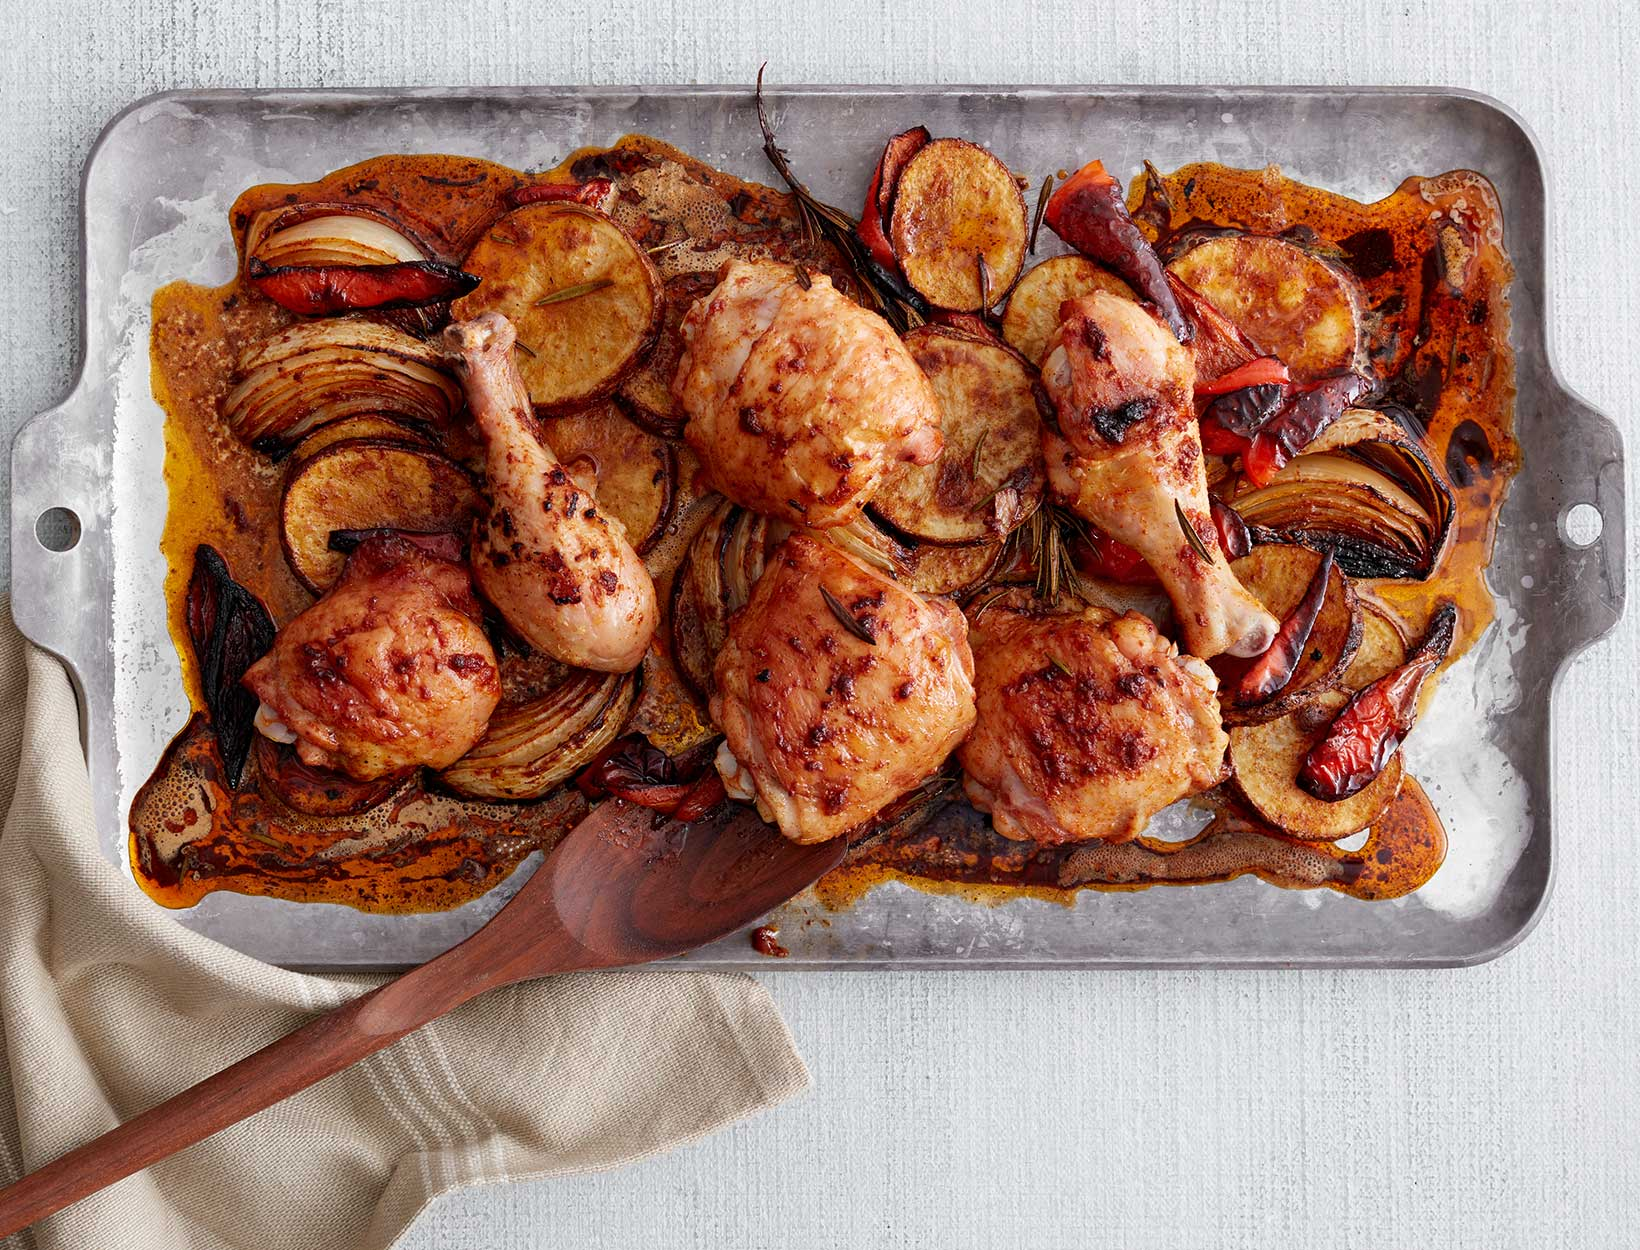 Chicken, Potatoes, and Peppers with Smoked Paprika and Sherry Vinegar